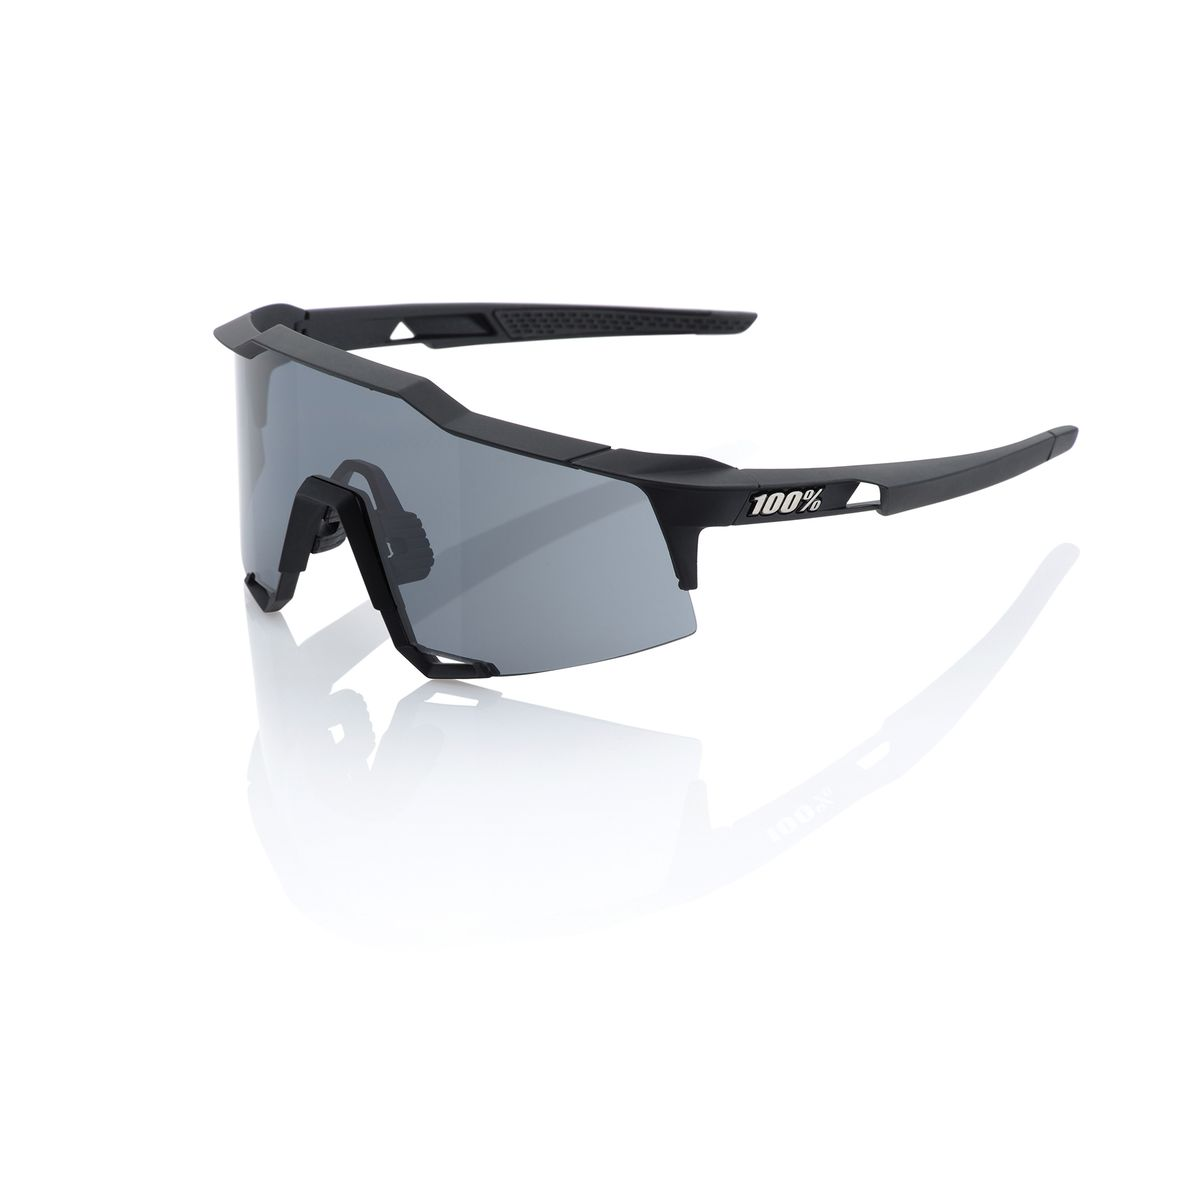 SPEEDCRAFT TALL sunglasses